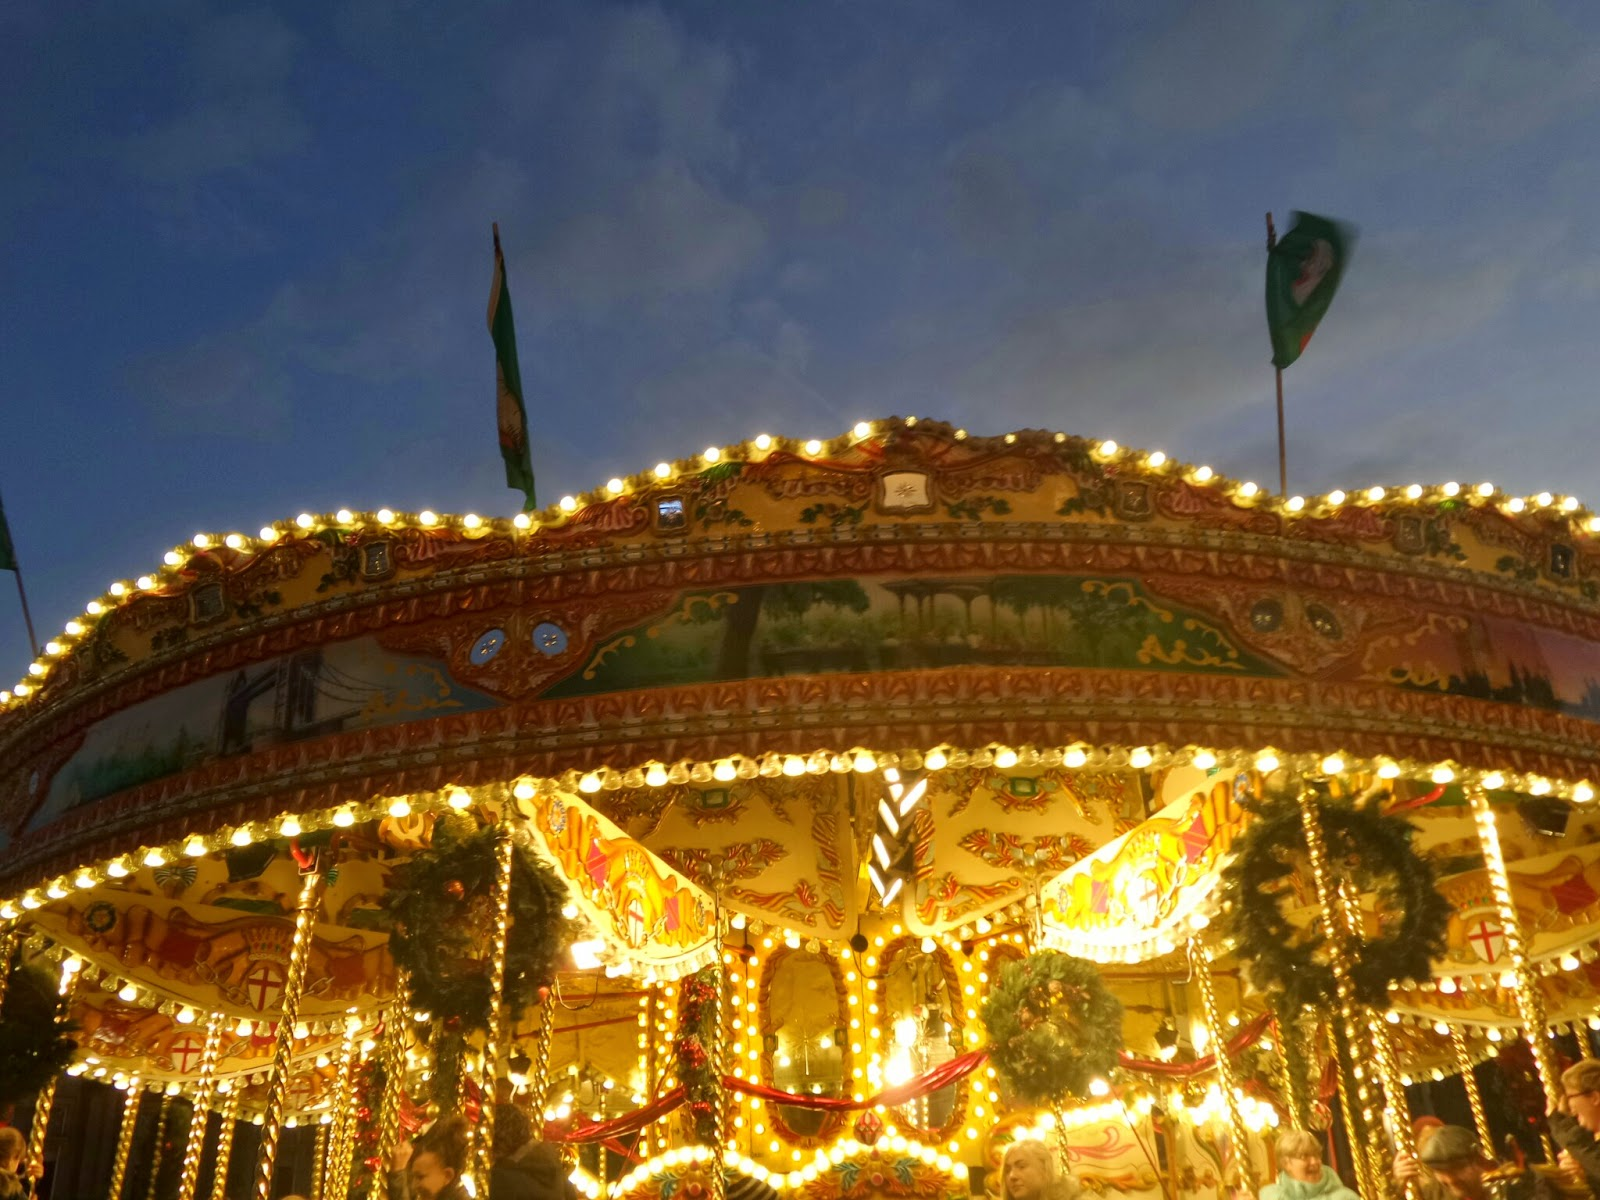 Carousel at the German Christmas Market in Birmingham City Centre